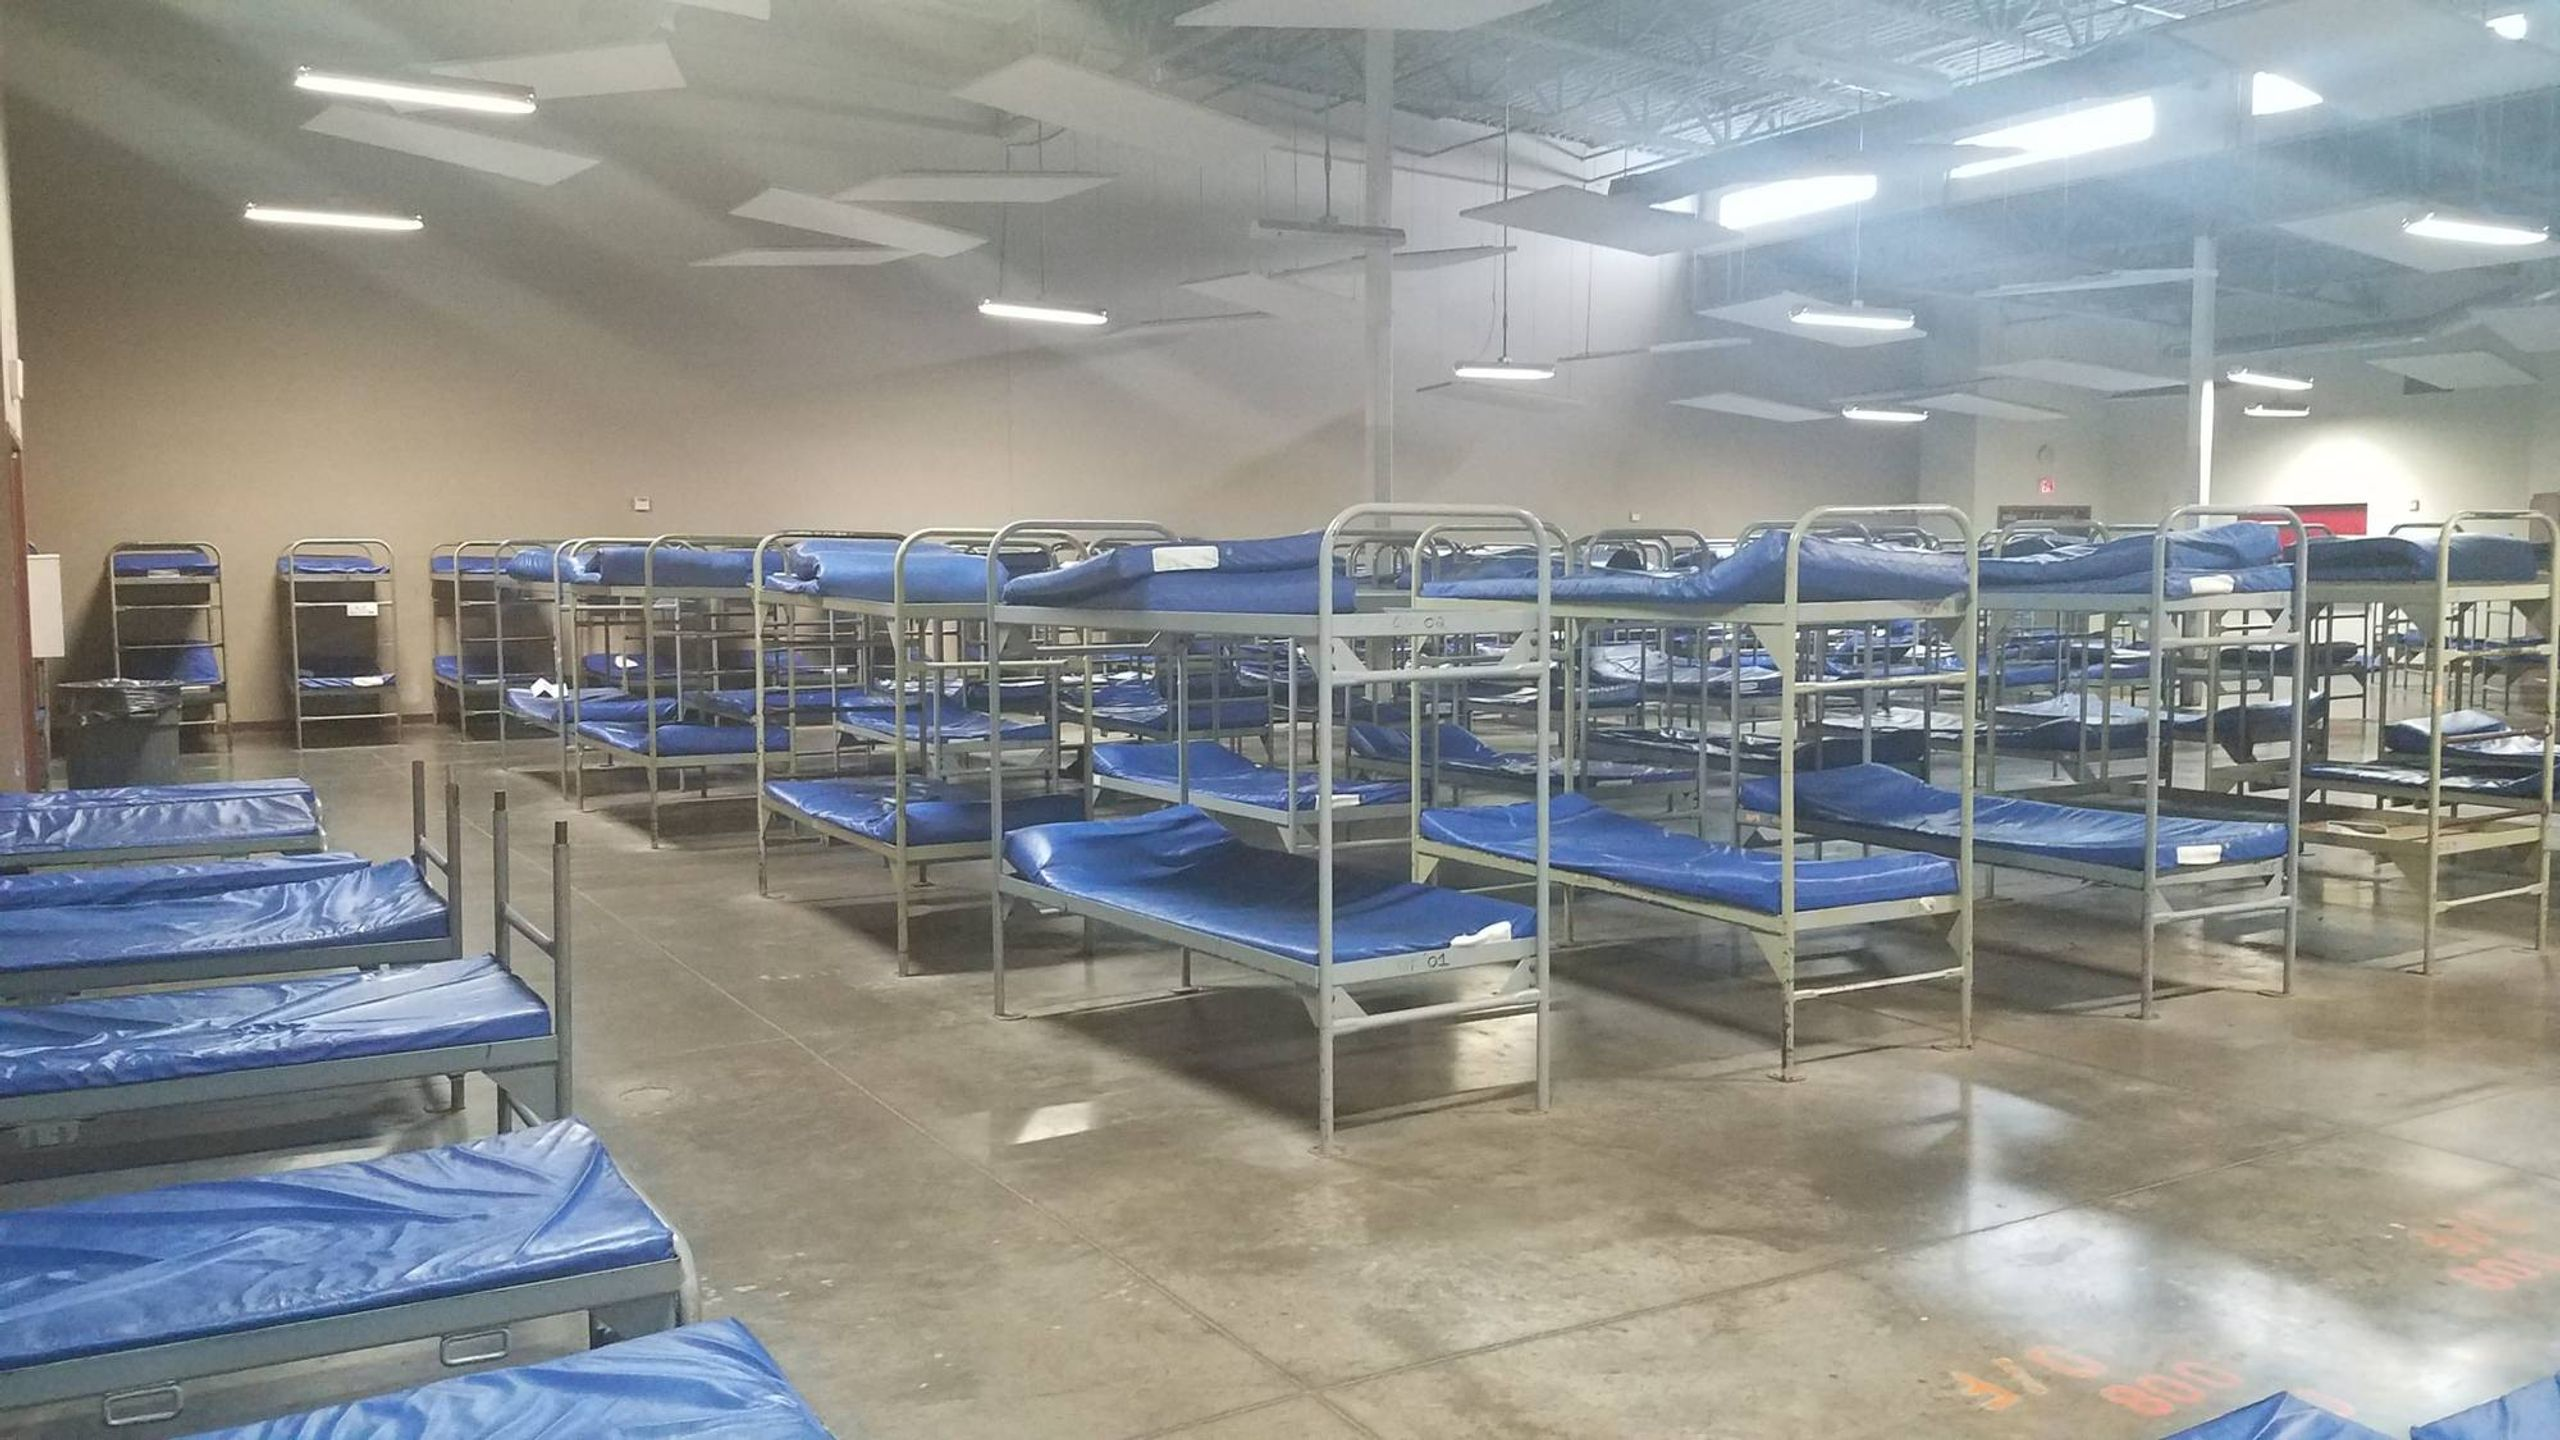 Dormitory at CASS. It can be difficult for older adults to get in and out of bunk beds, which is why Lisa Glow, CEO of CASS, is pushing for a shelter geared towards the needs of older people.